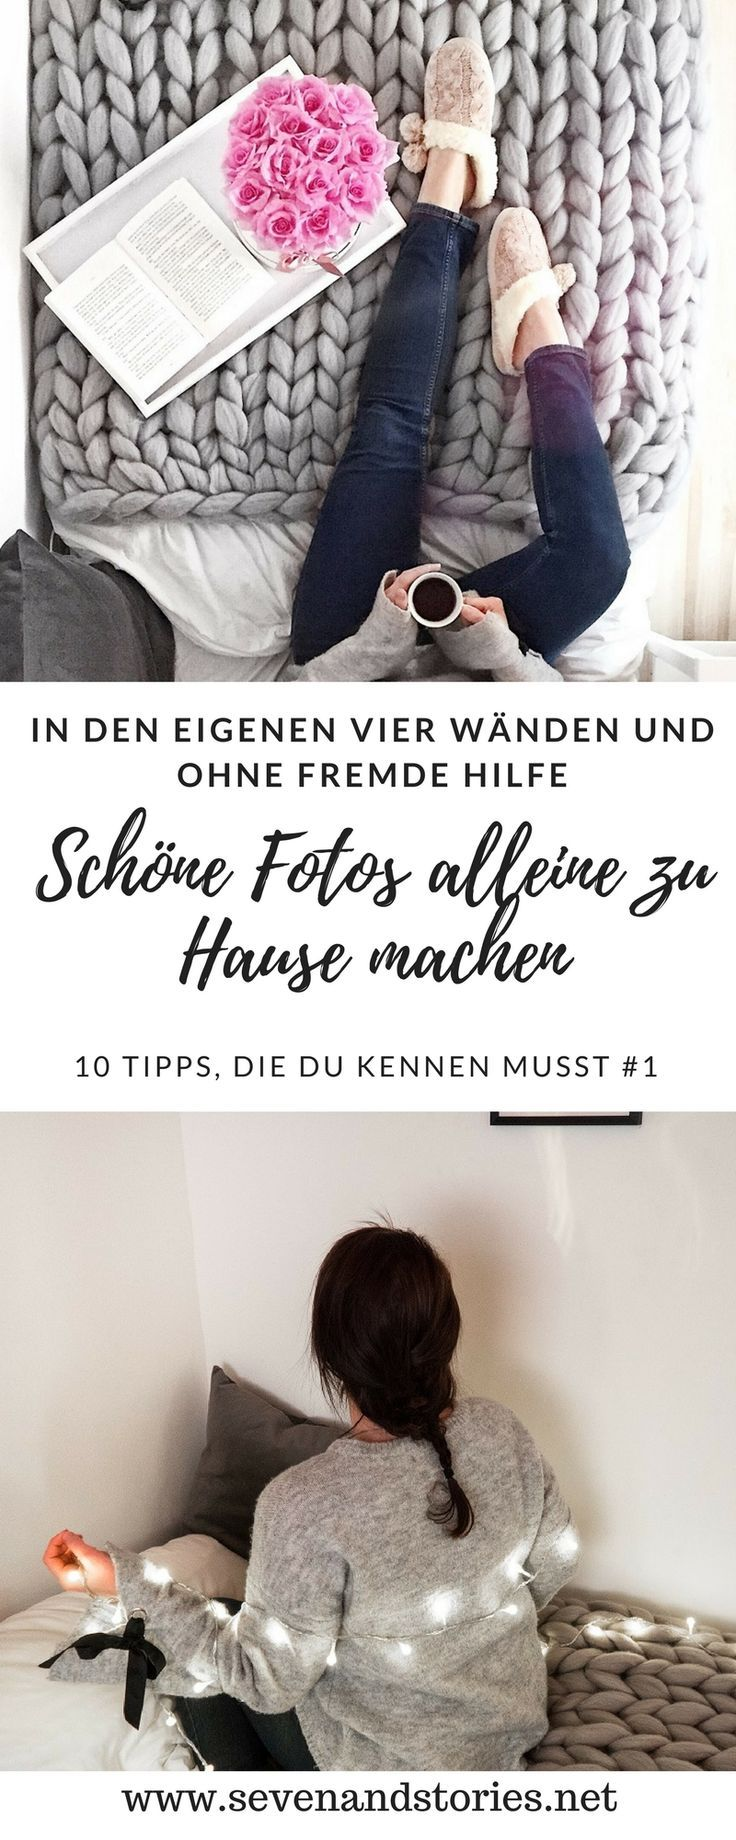 sch ne fotos alleine zu hause machen foto tipps techniken pinterest fotos fotografie. Black Bedroom Furniture Sets. Home Design Ideas